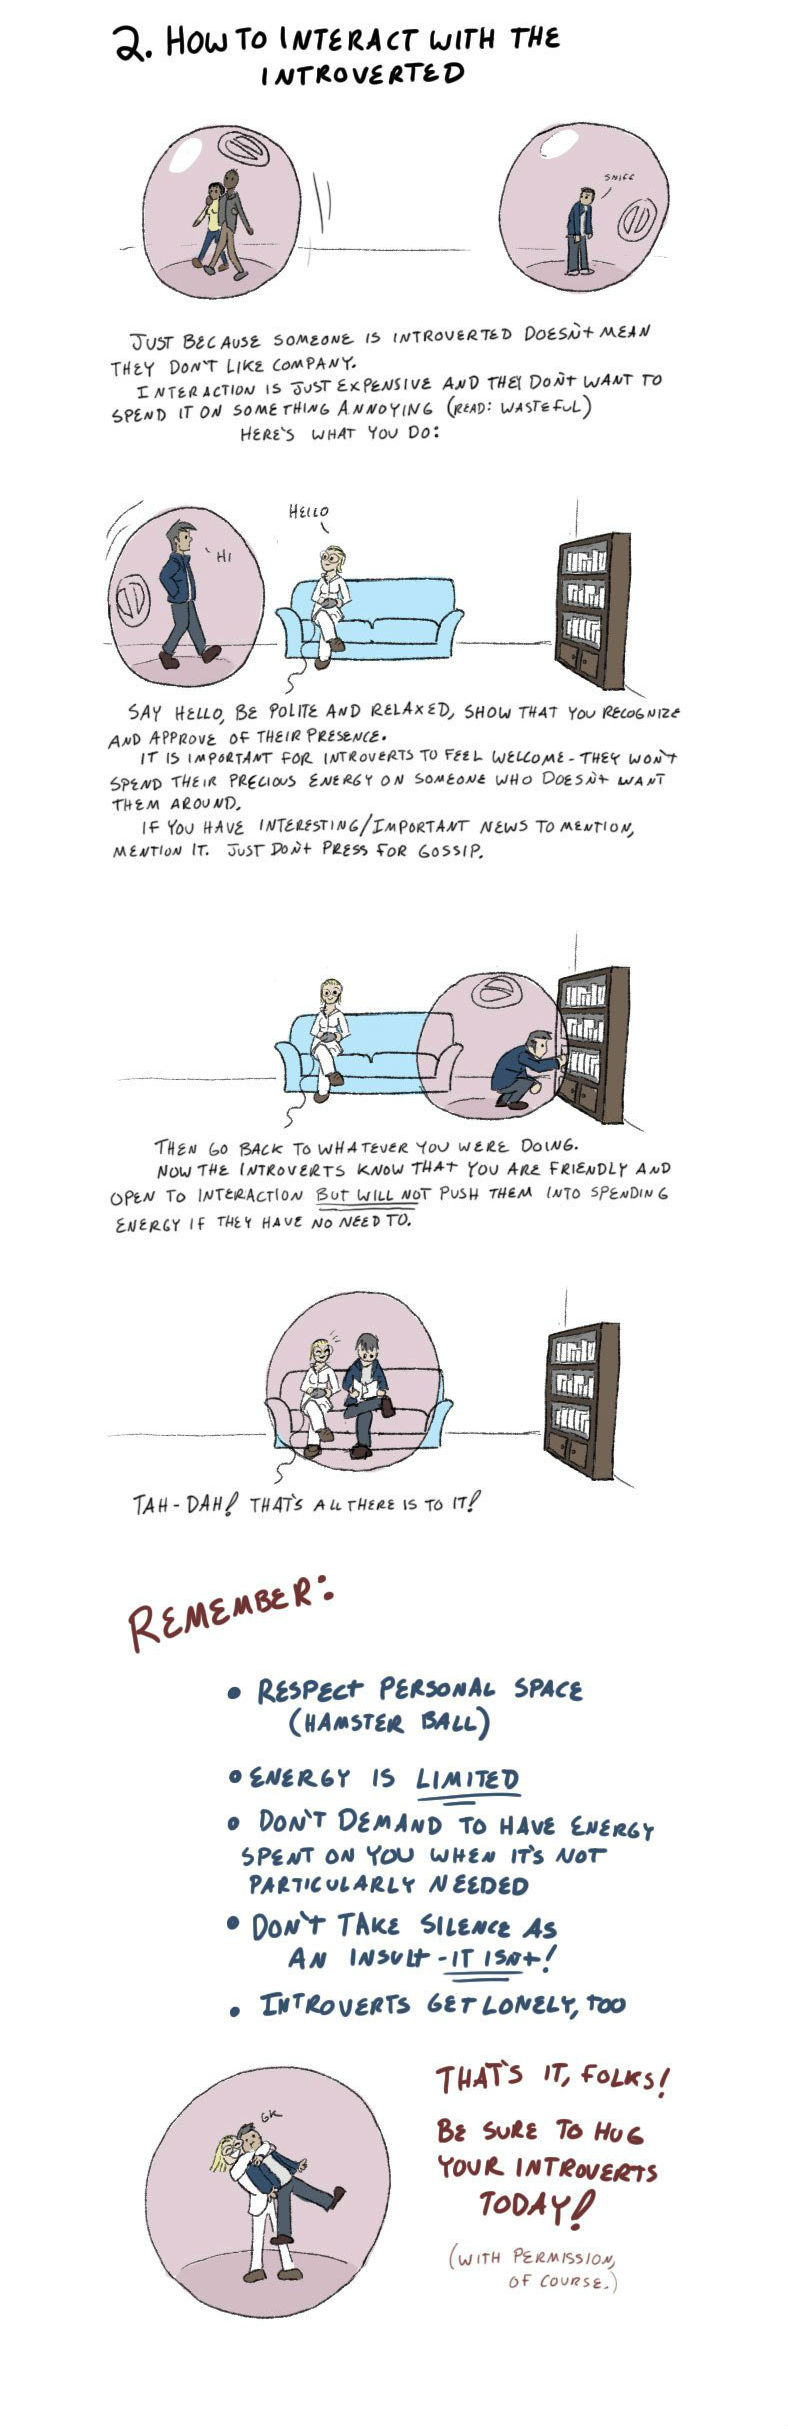 interacting-with-an-introvert-infographic2